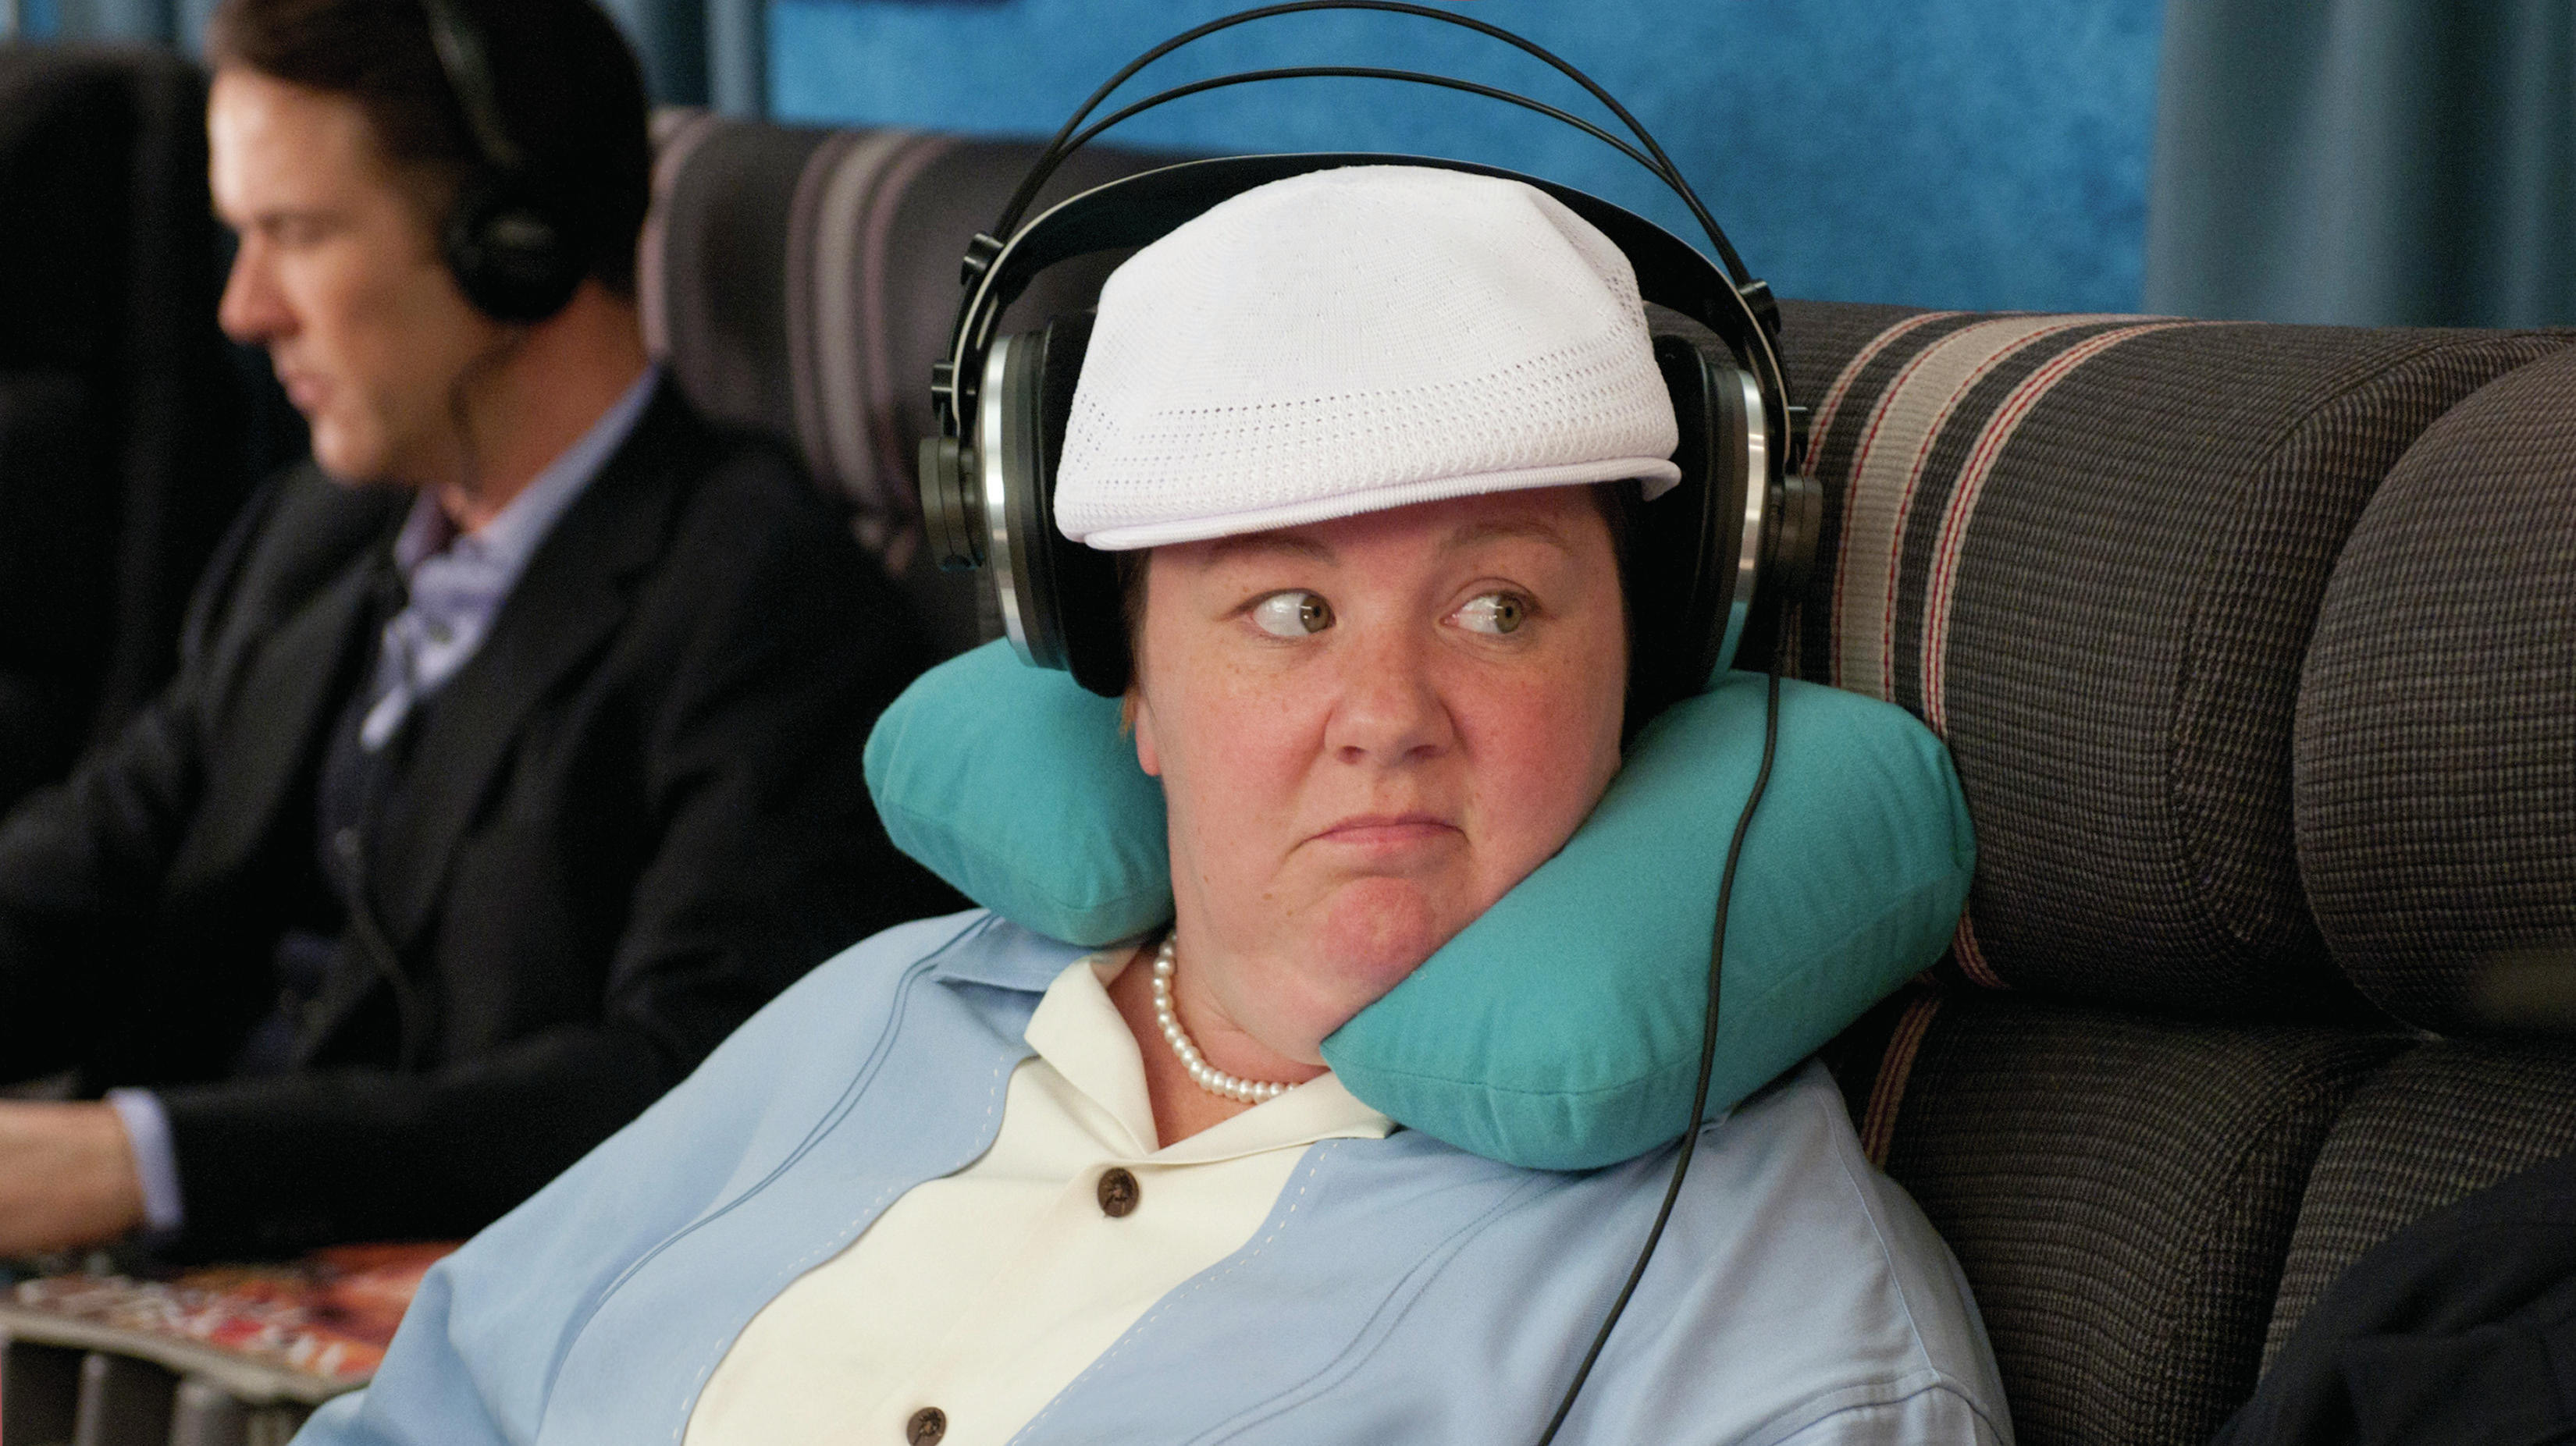 bridesmaids_airplane_pillow